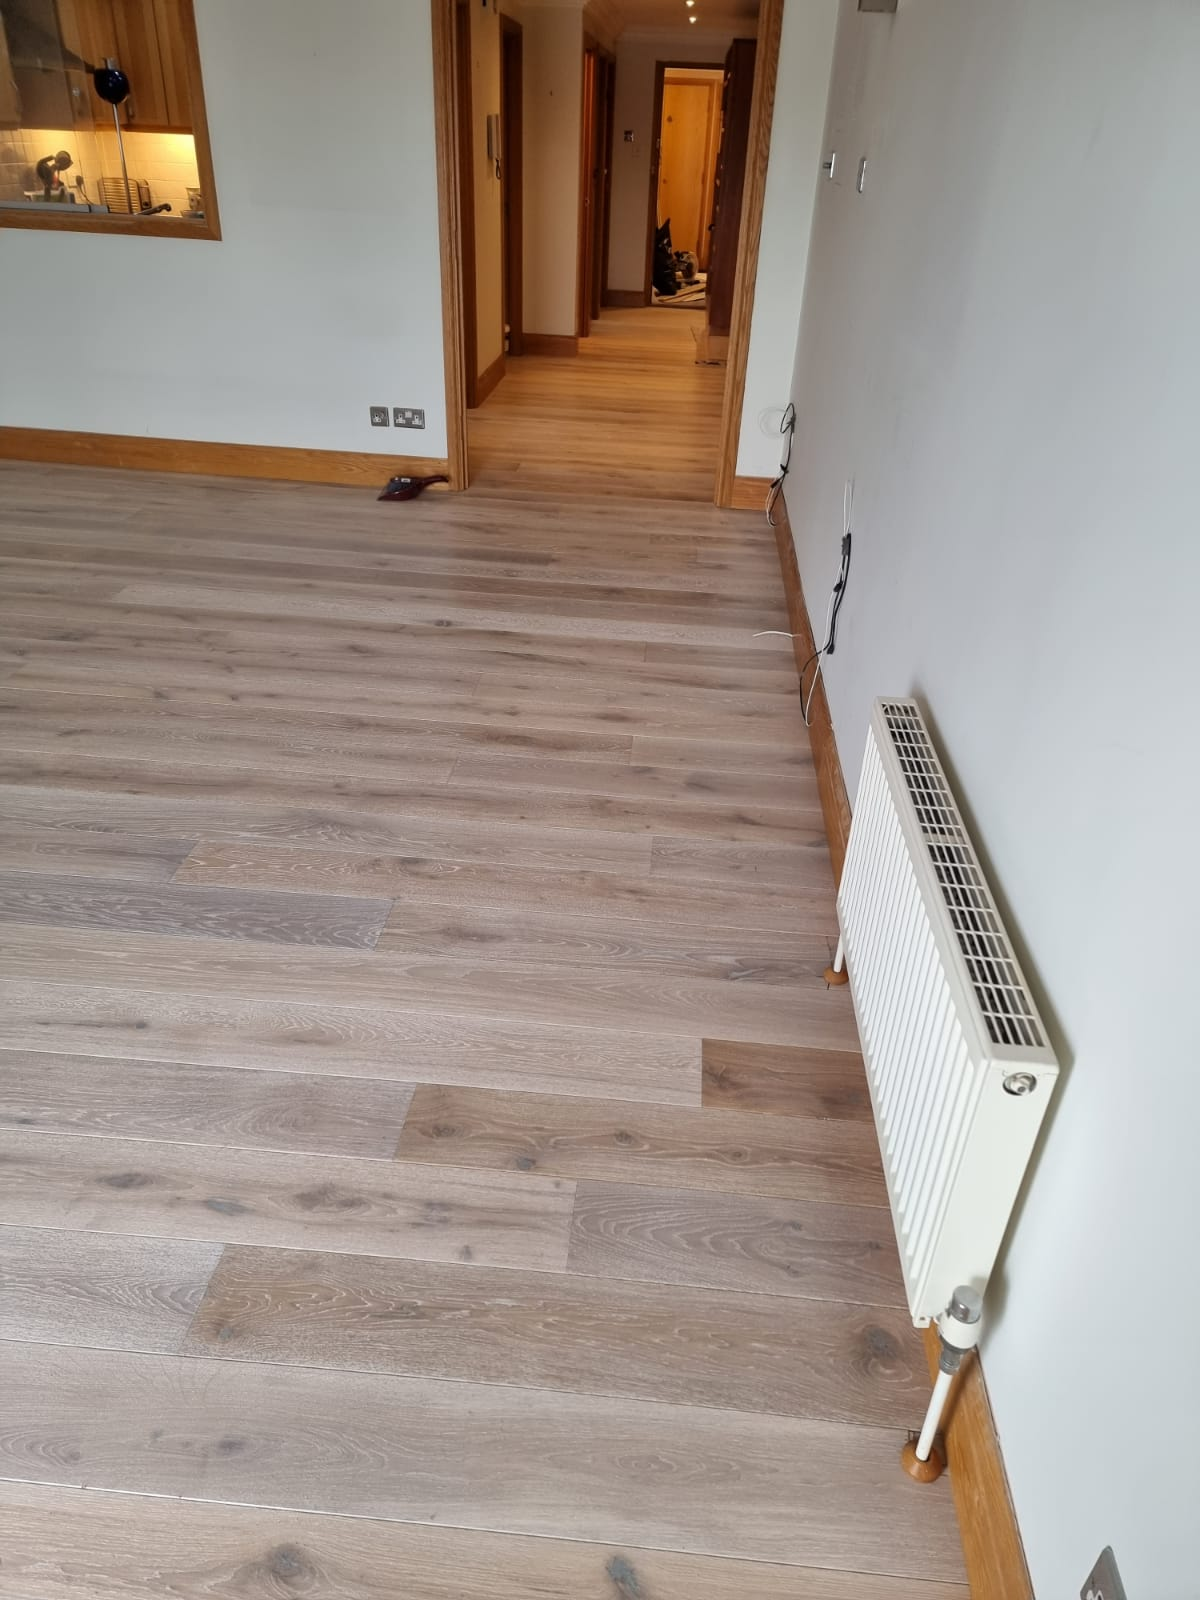 Staki White Brushed & Oil Wood Flooring In Richmond 2